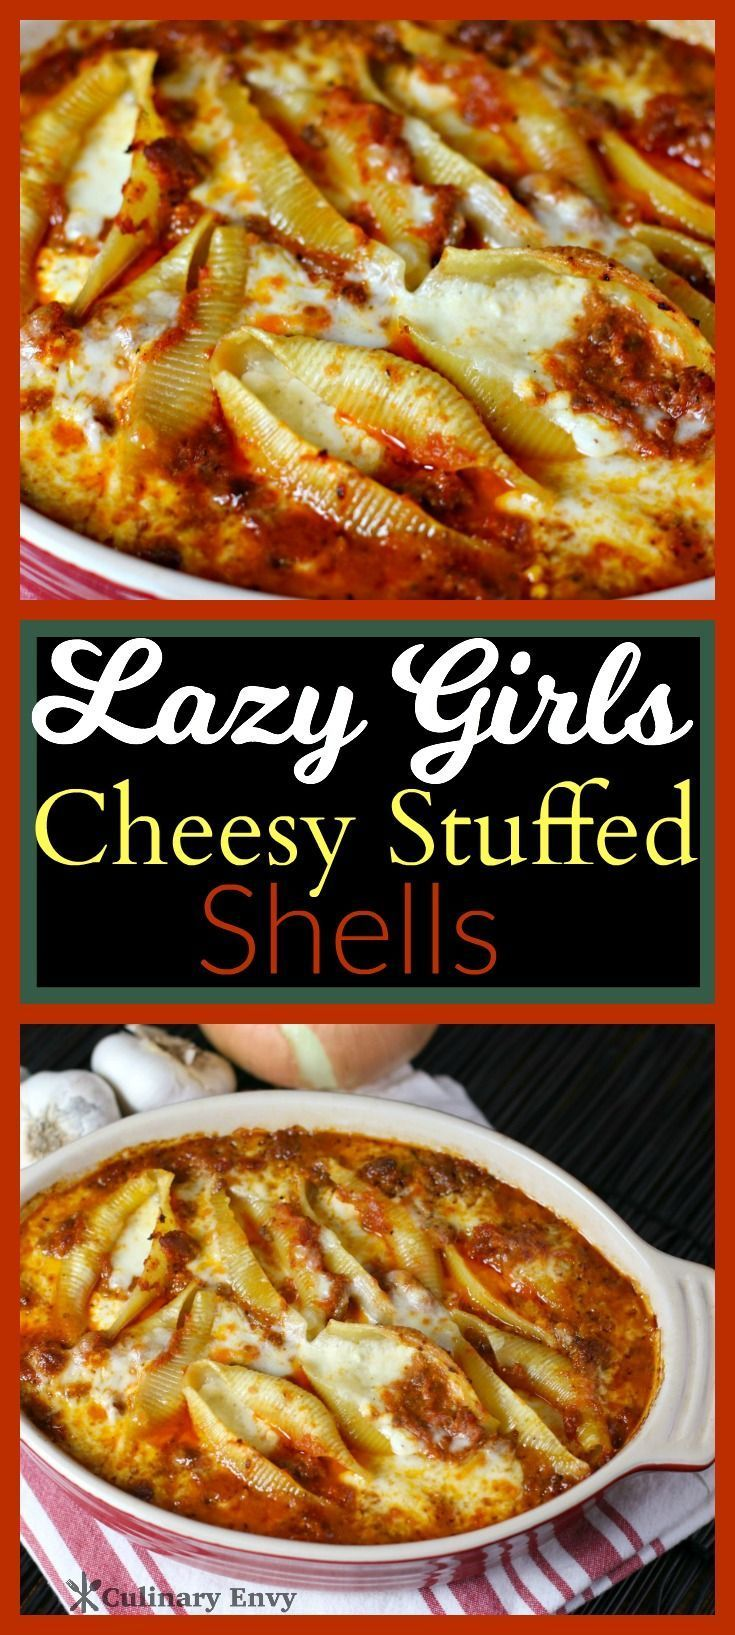 Lazy Girls Cheesy Stuffed Shells are big tasty bites of cheese stuffed pasta, baked in a rich red tomato beef sauce. It's exceptionally easy comfort food at its best!  Click to read more or Pin & Save for later.